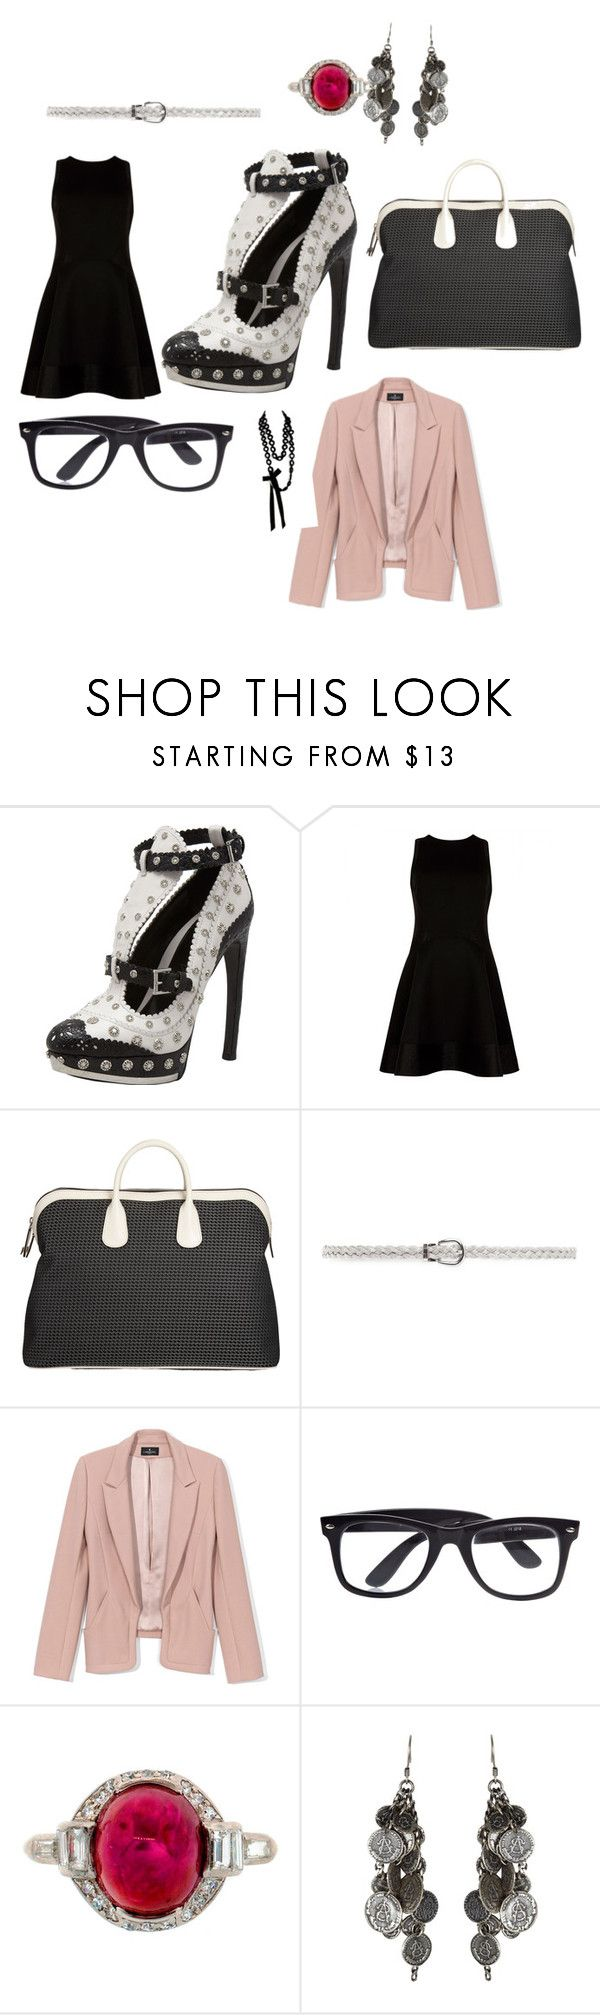 """""""Untitled #5656"""" by brittklein ❤ liked on Polyvore featuring Alexander McQueen, Ted Baker, Valextra, MANGO, J. Mendel, River Island, AllSaints and Sally Phillips"""